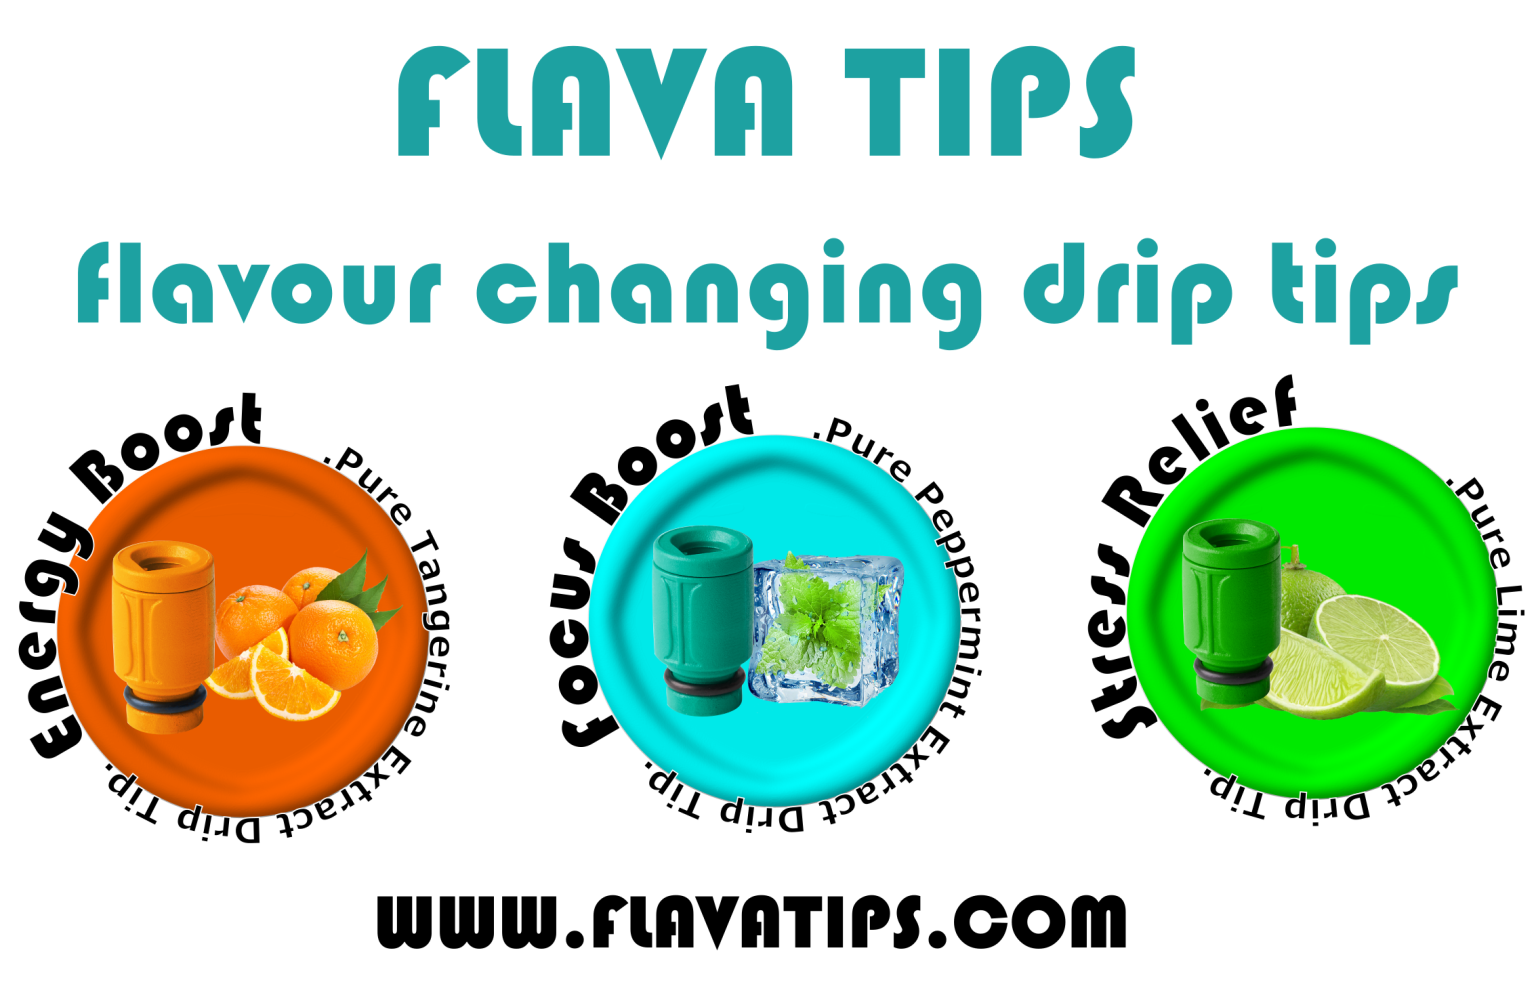 Flava Tips (Flavour Changing Drip Tips)